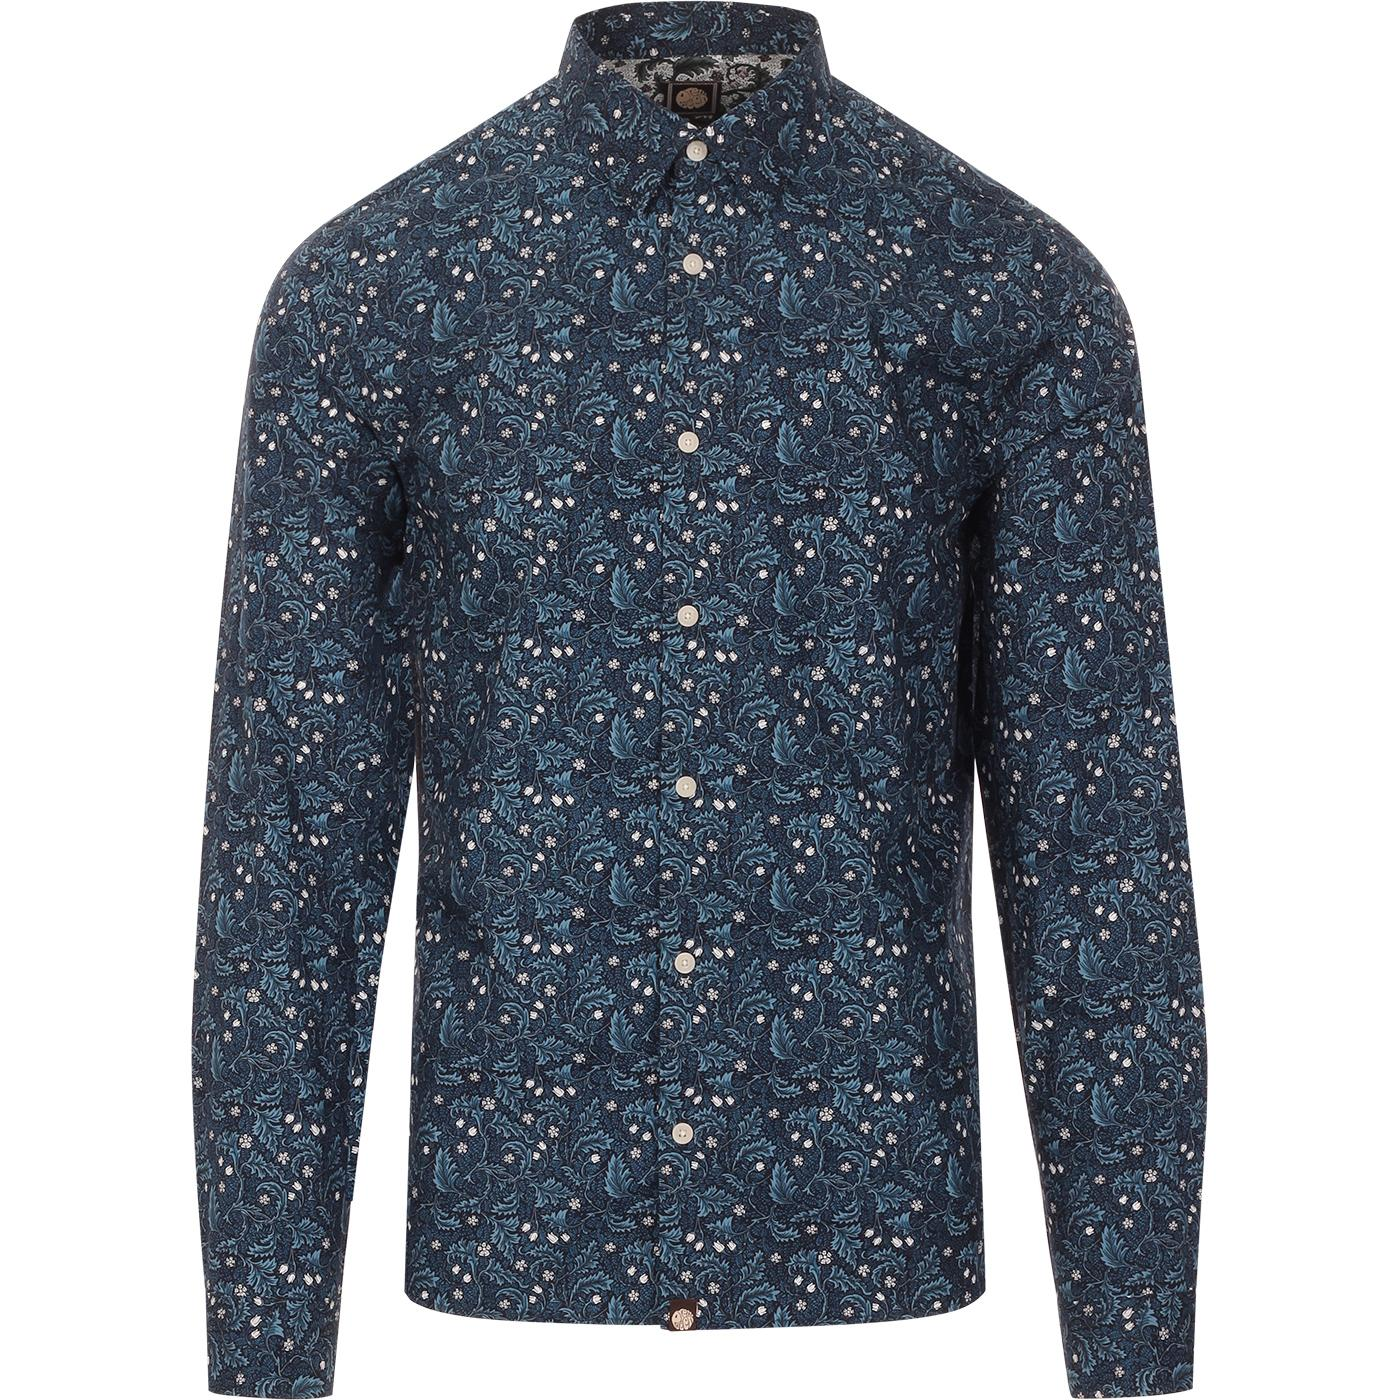 Floral PRETTY GREEN 60s Slim Fit L/S Shirt Navy